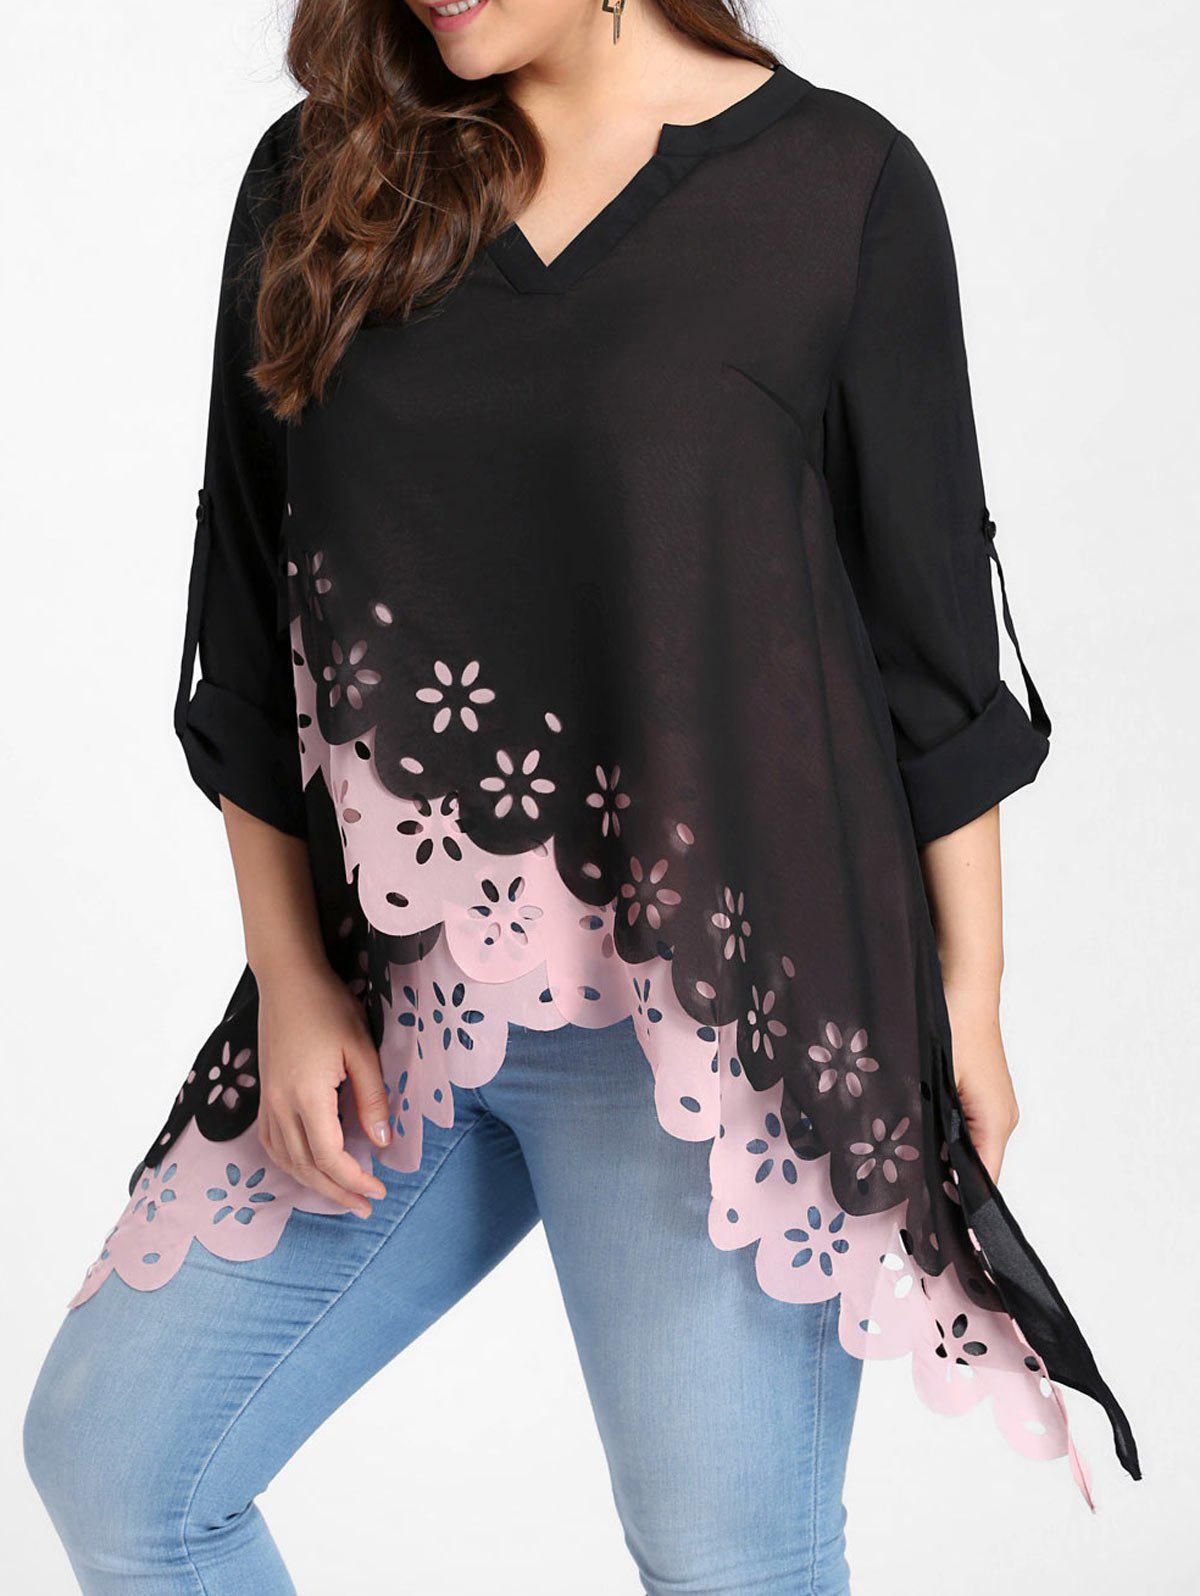 Plus Size Overlap Openwork Scalloped Edge BlouseWOMEN<br><br>Size: 4XL; Color: PINK; Material: Polyester; Shirt Length: Long; Sleeve Length: Full; Collar: V-Neck; Style: Casual; Season: Fall,Spring; Pattern Type: Solid; Weight: 0.3100kg; Package Contents: 1 x Blouse;